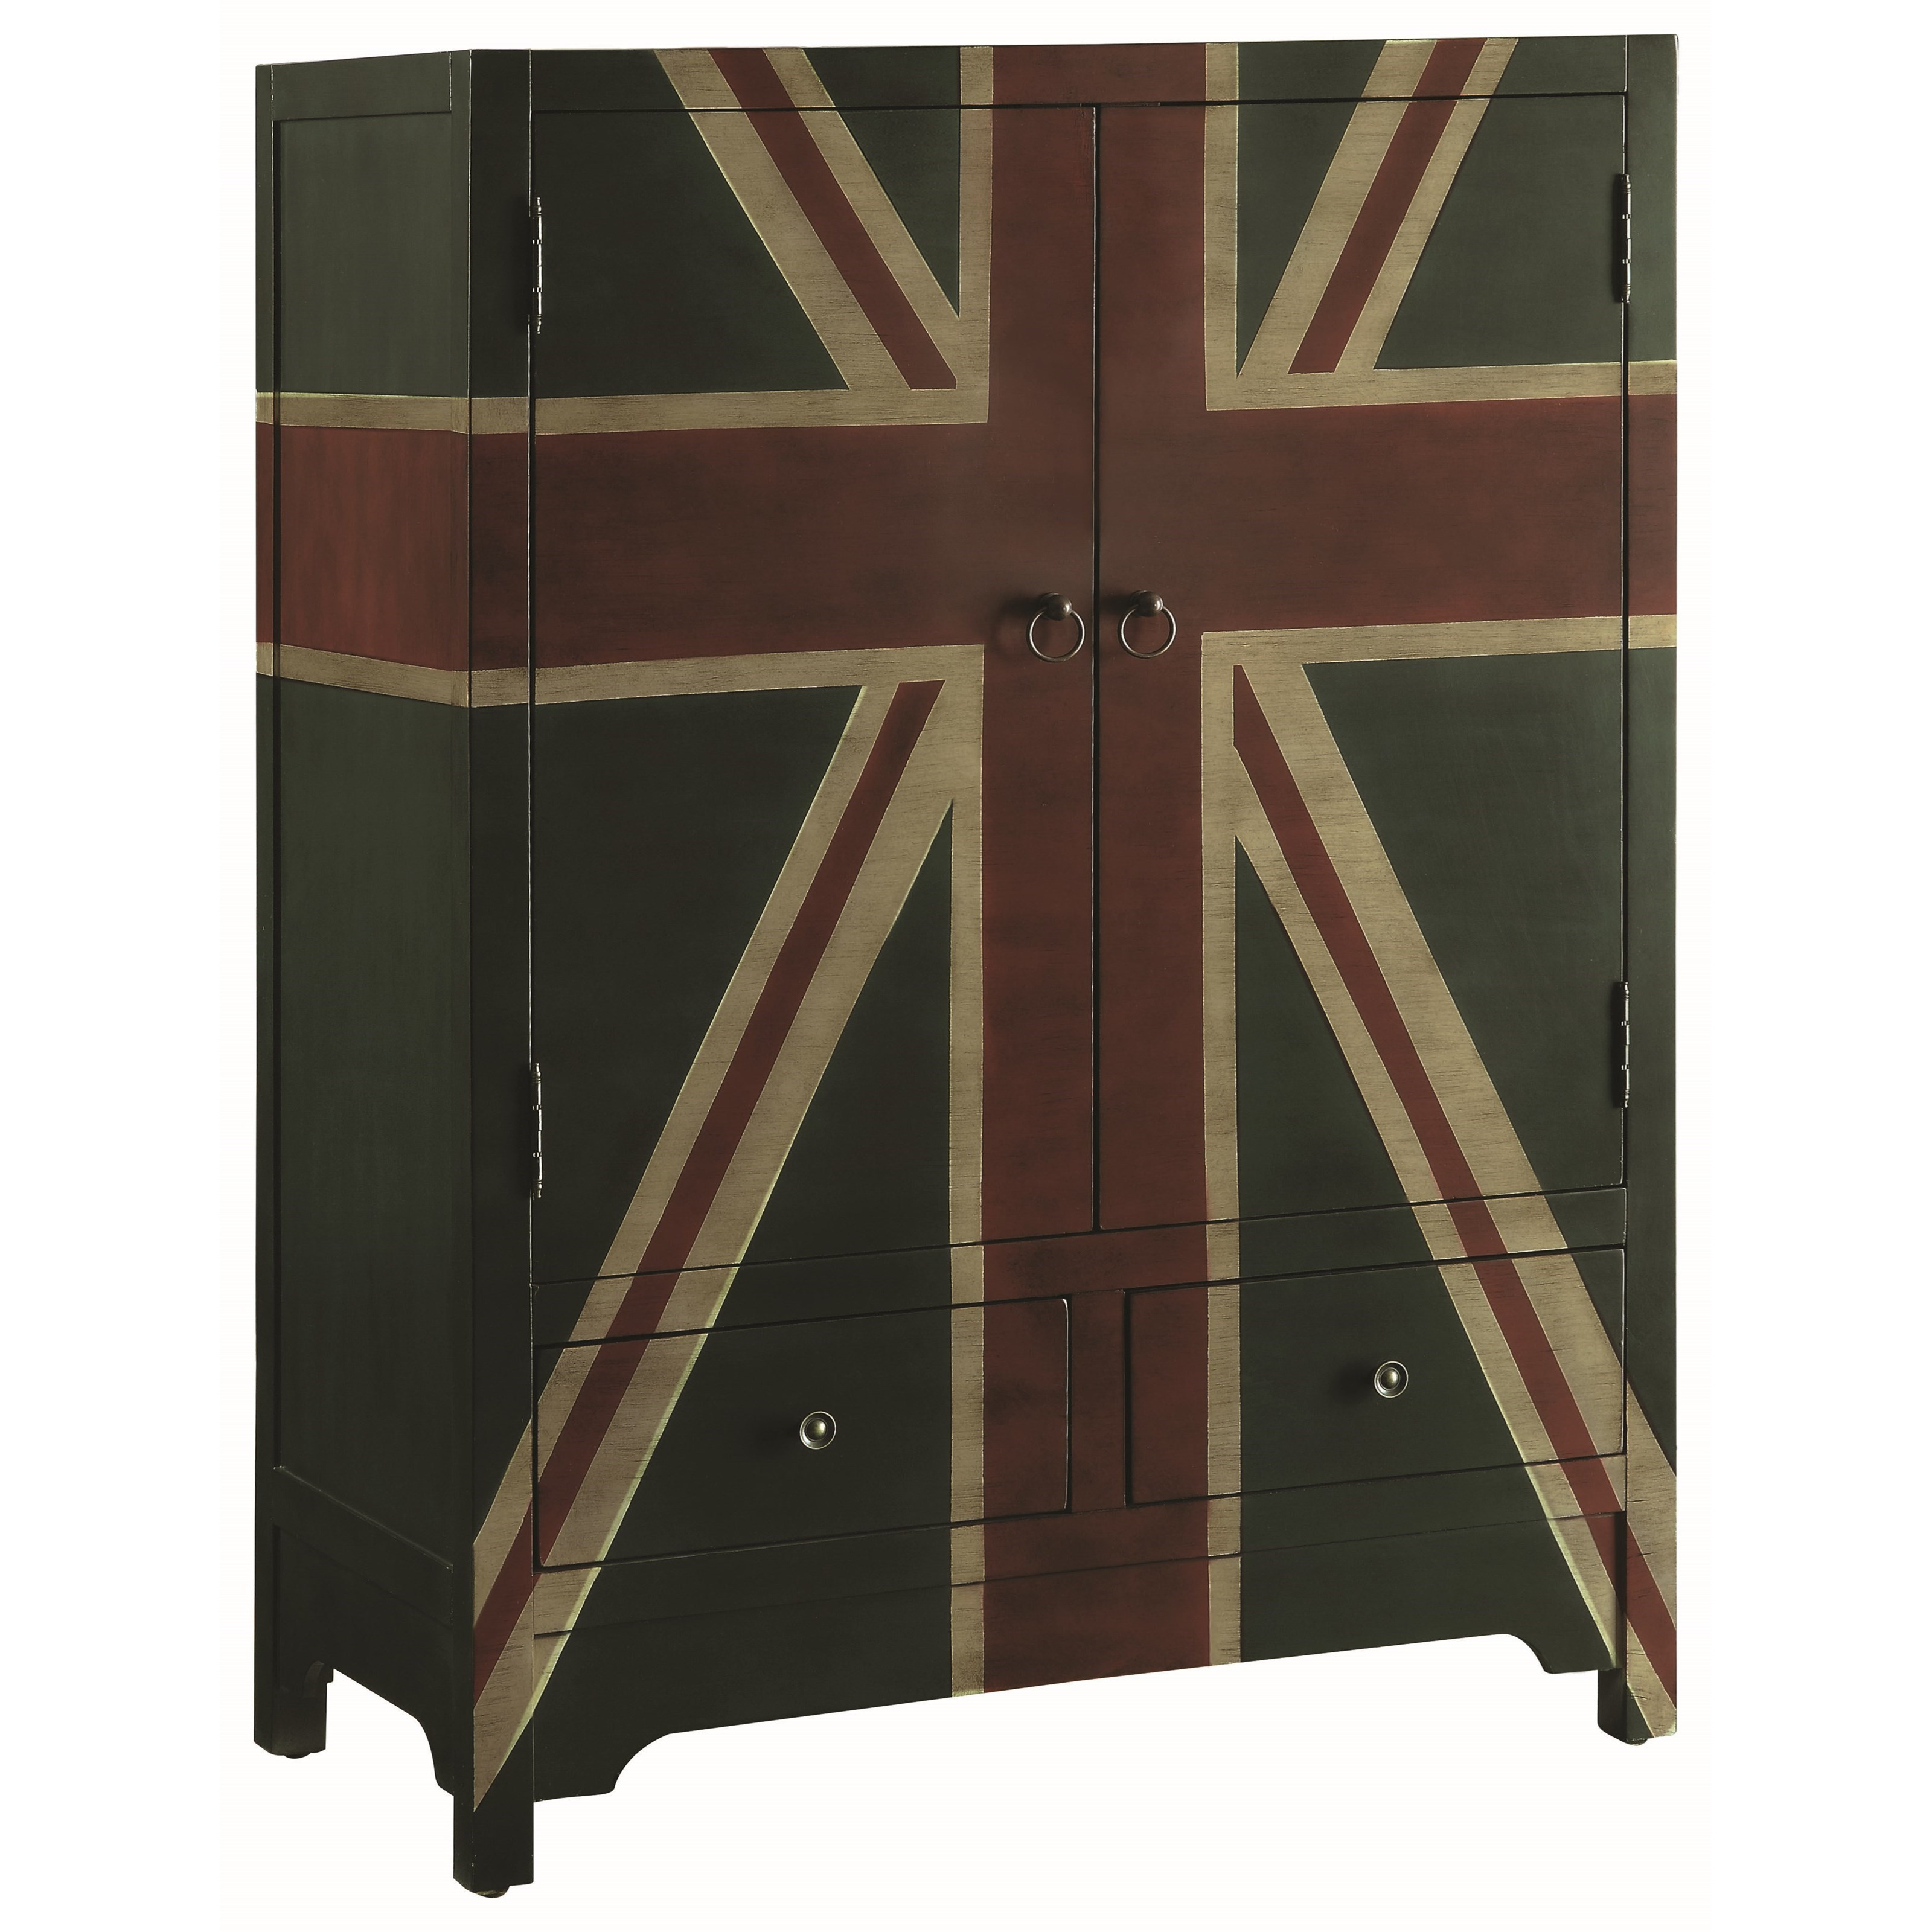 Coaster Accent Cabinets Accent Cabinet - Item Number: 100989